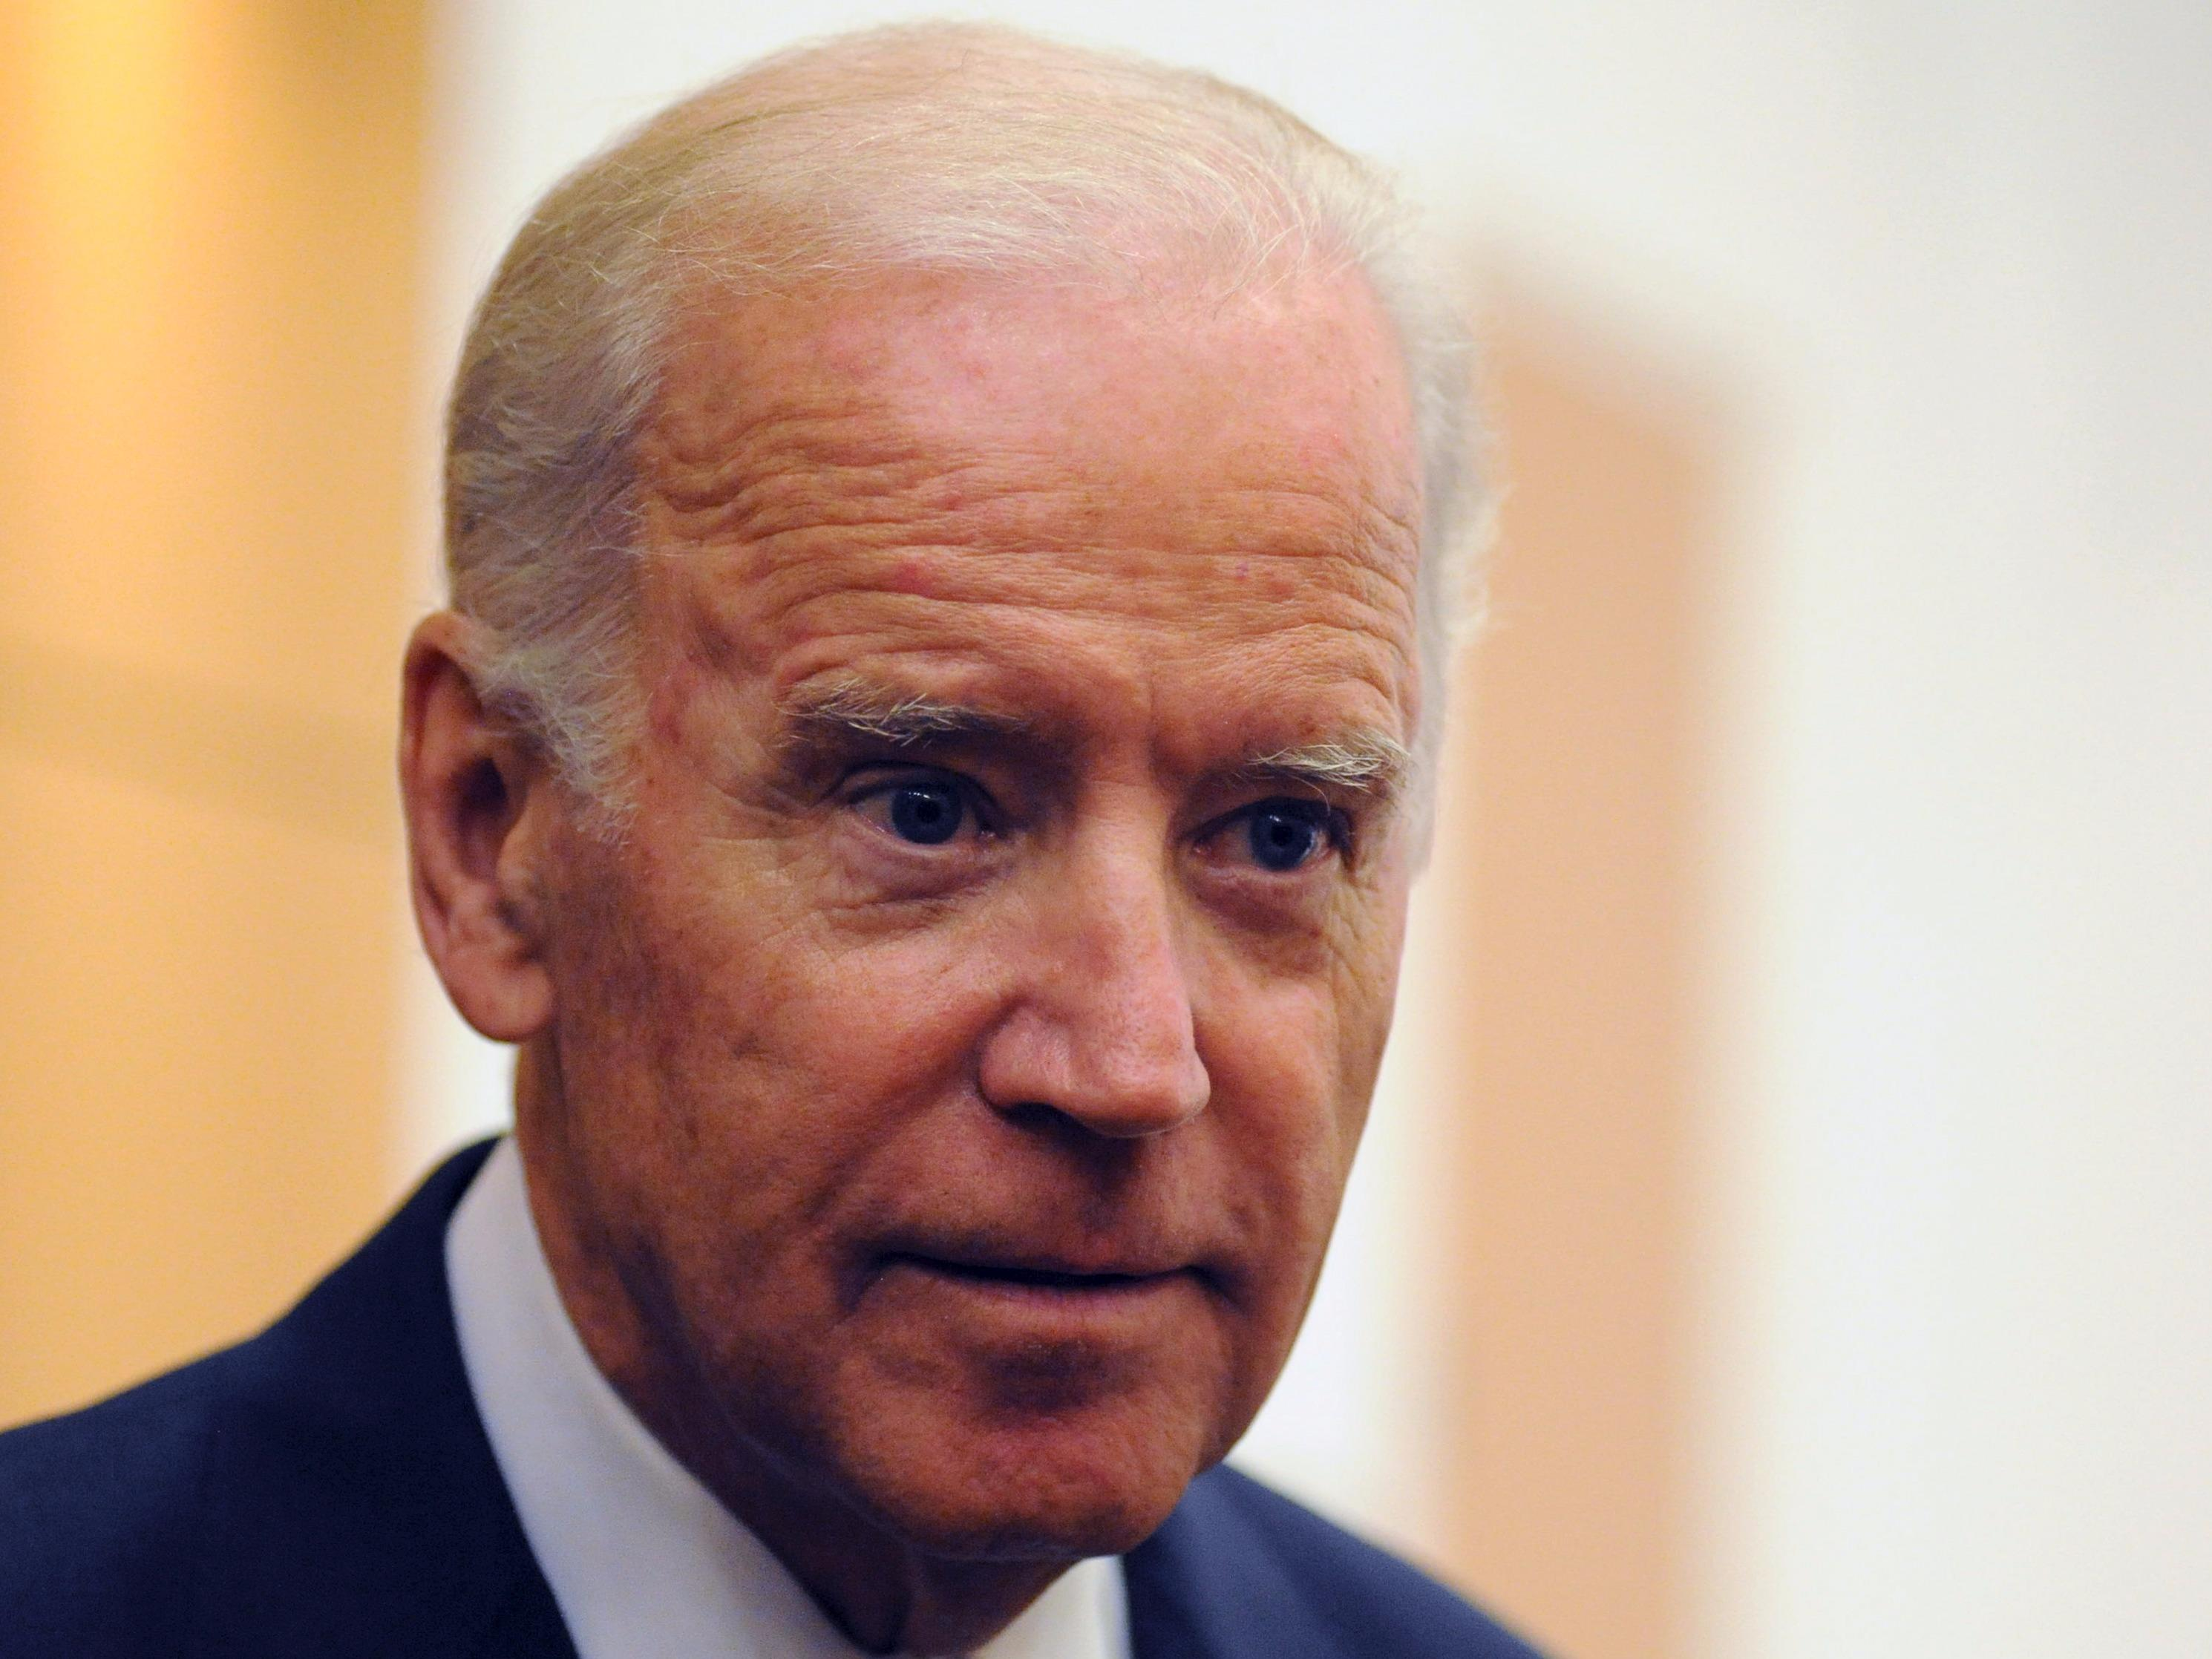 Biden's latest meeting suggests he may be ready to run